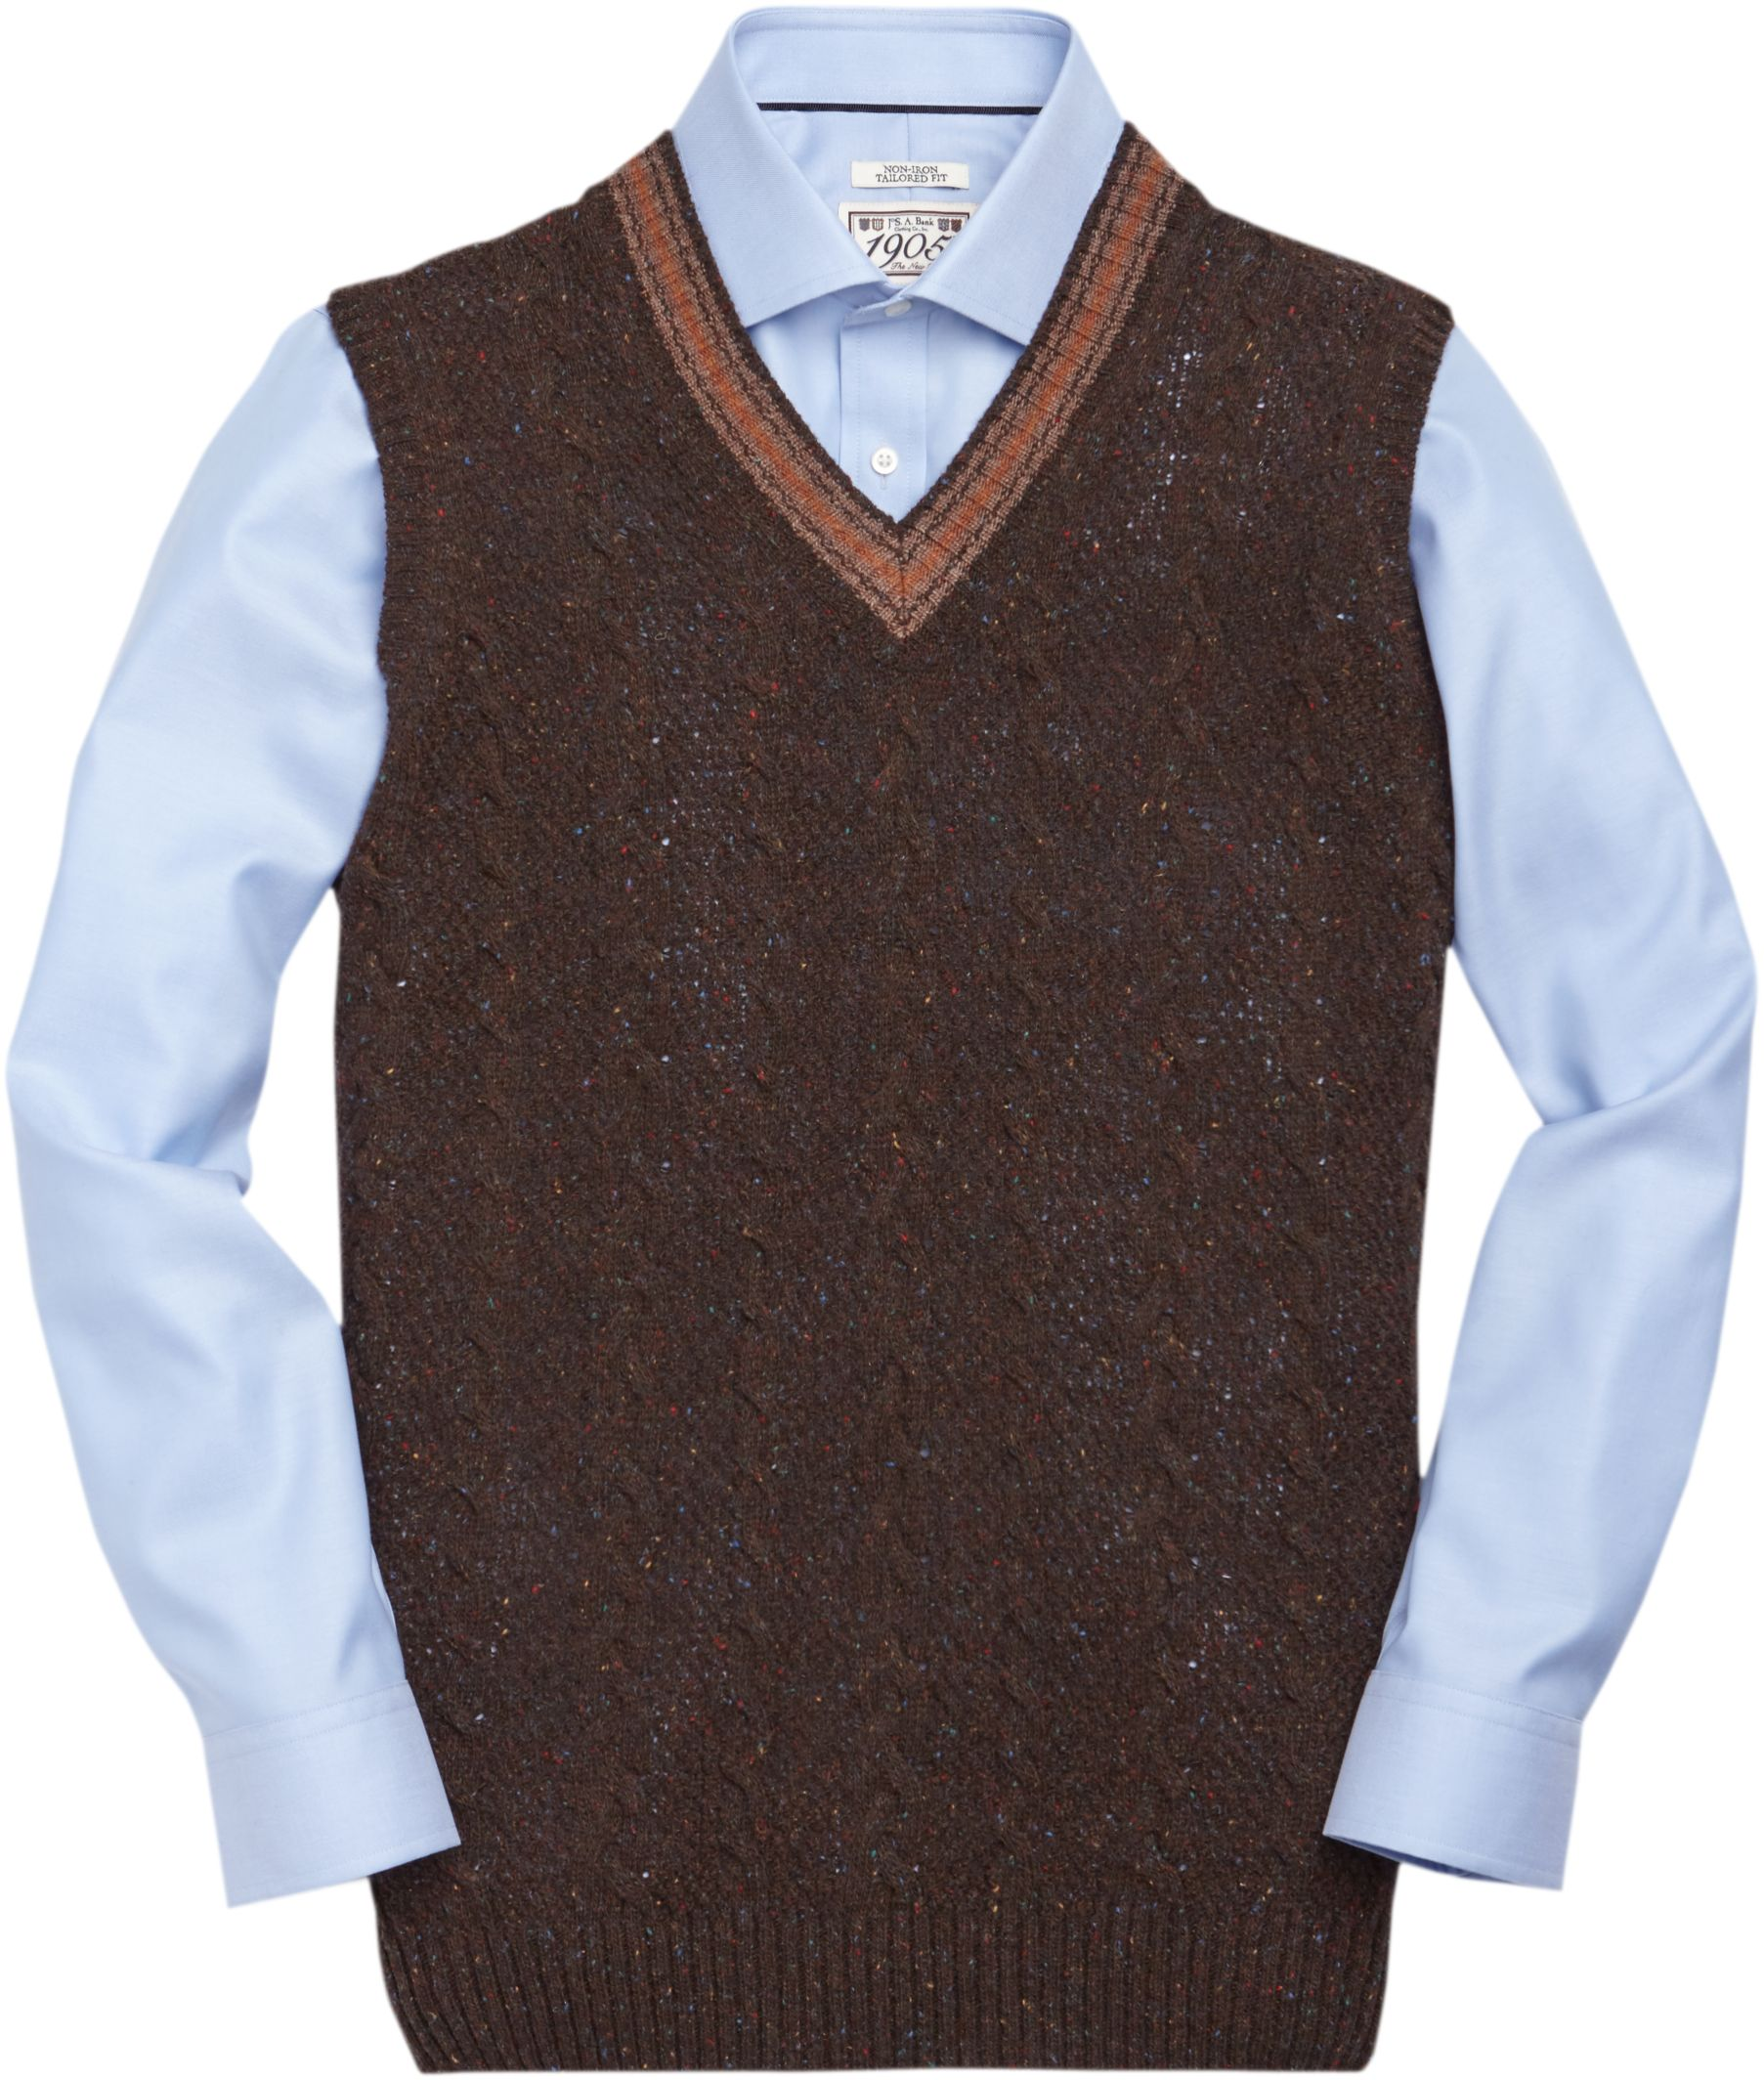 1905 Collection Lambswool Sweater Vest CLEARANCE - All Clearance ...